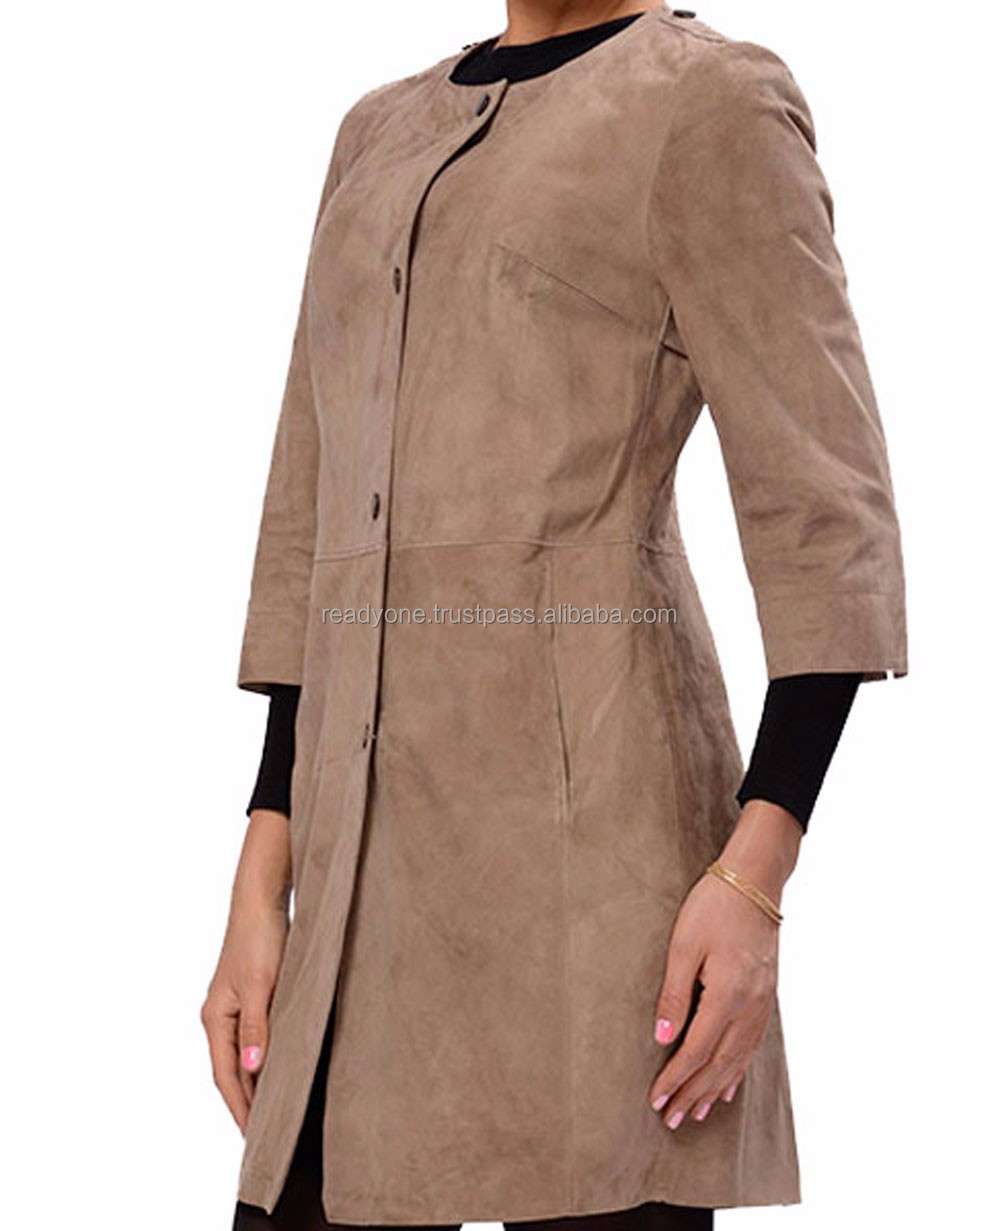 Design Zipper Front Long Leather Sleeve lapel Fashion Turkish